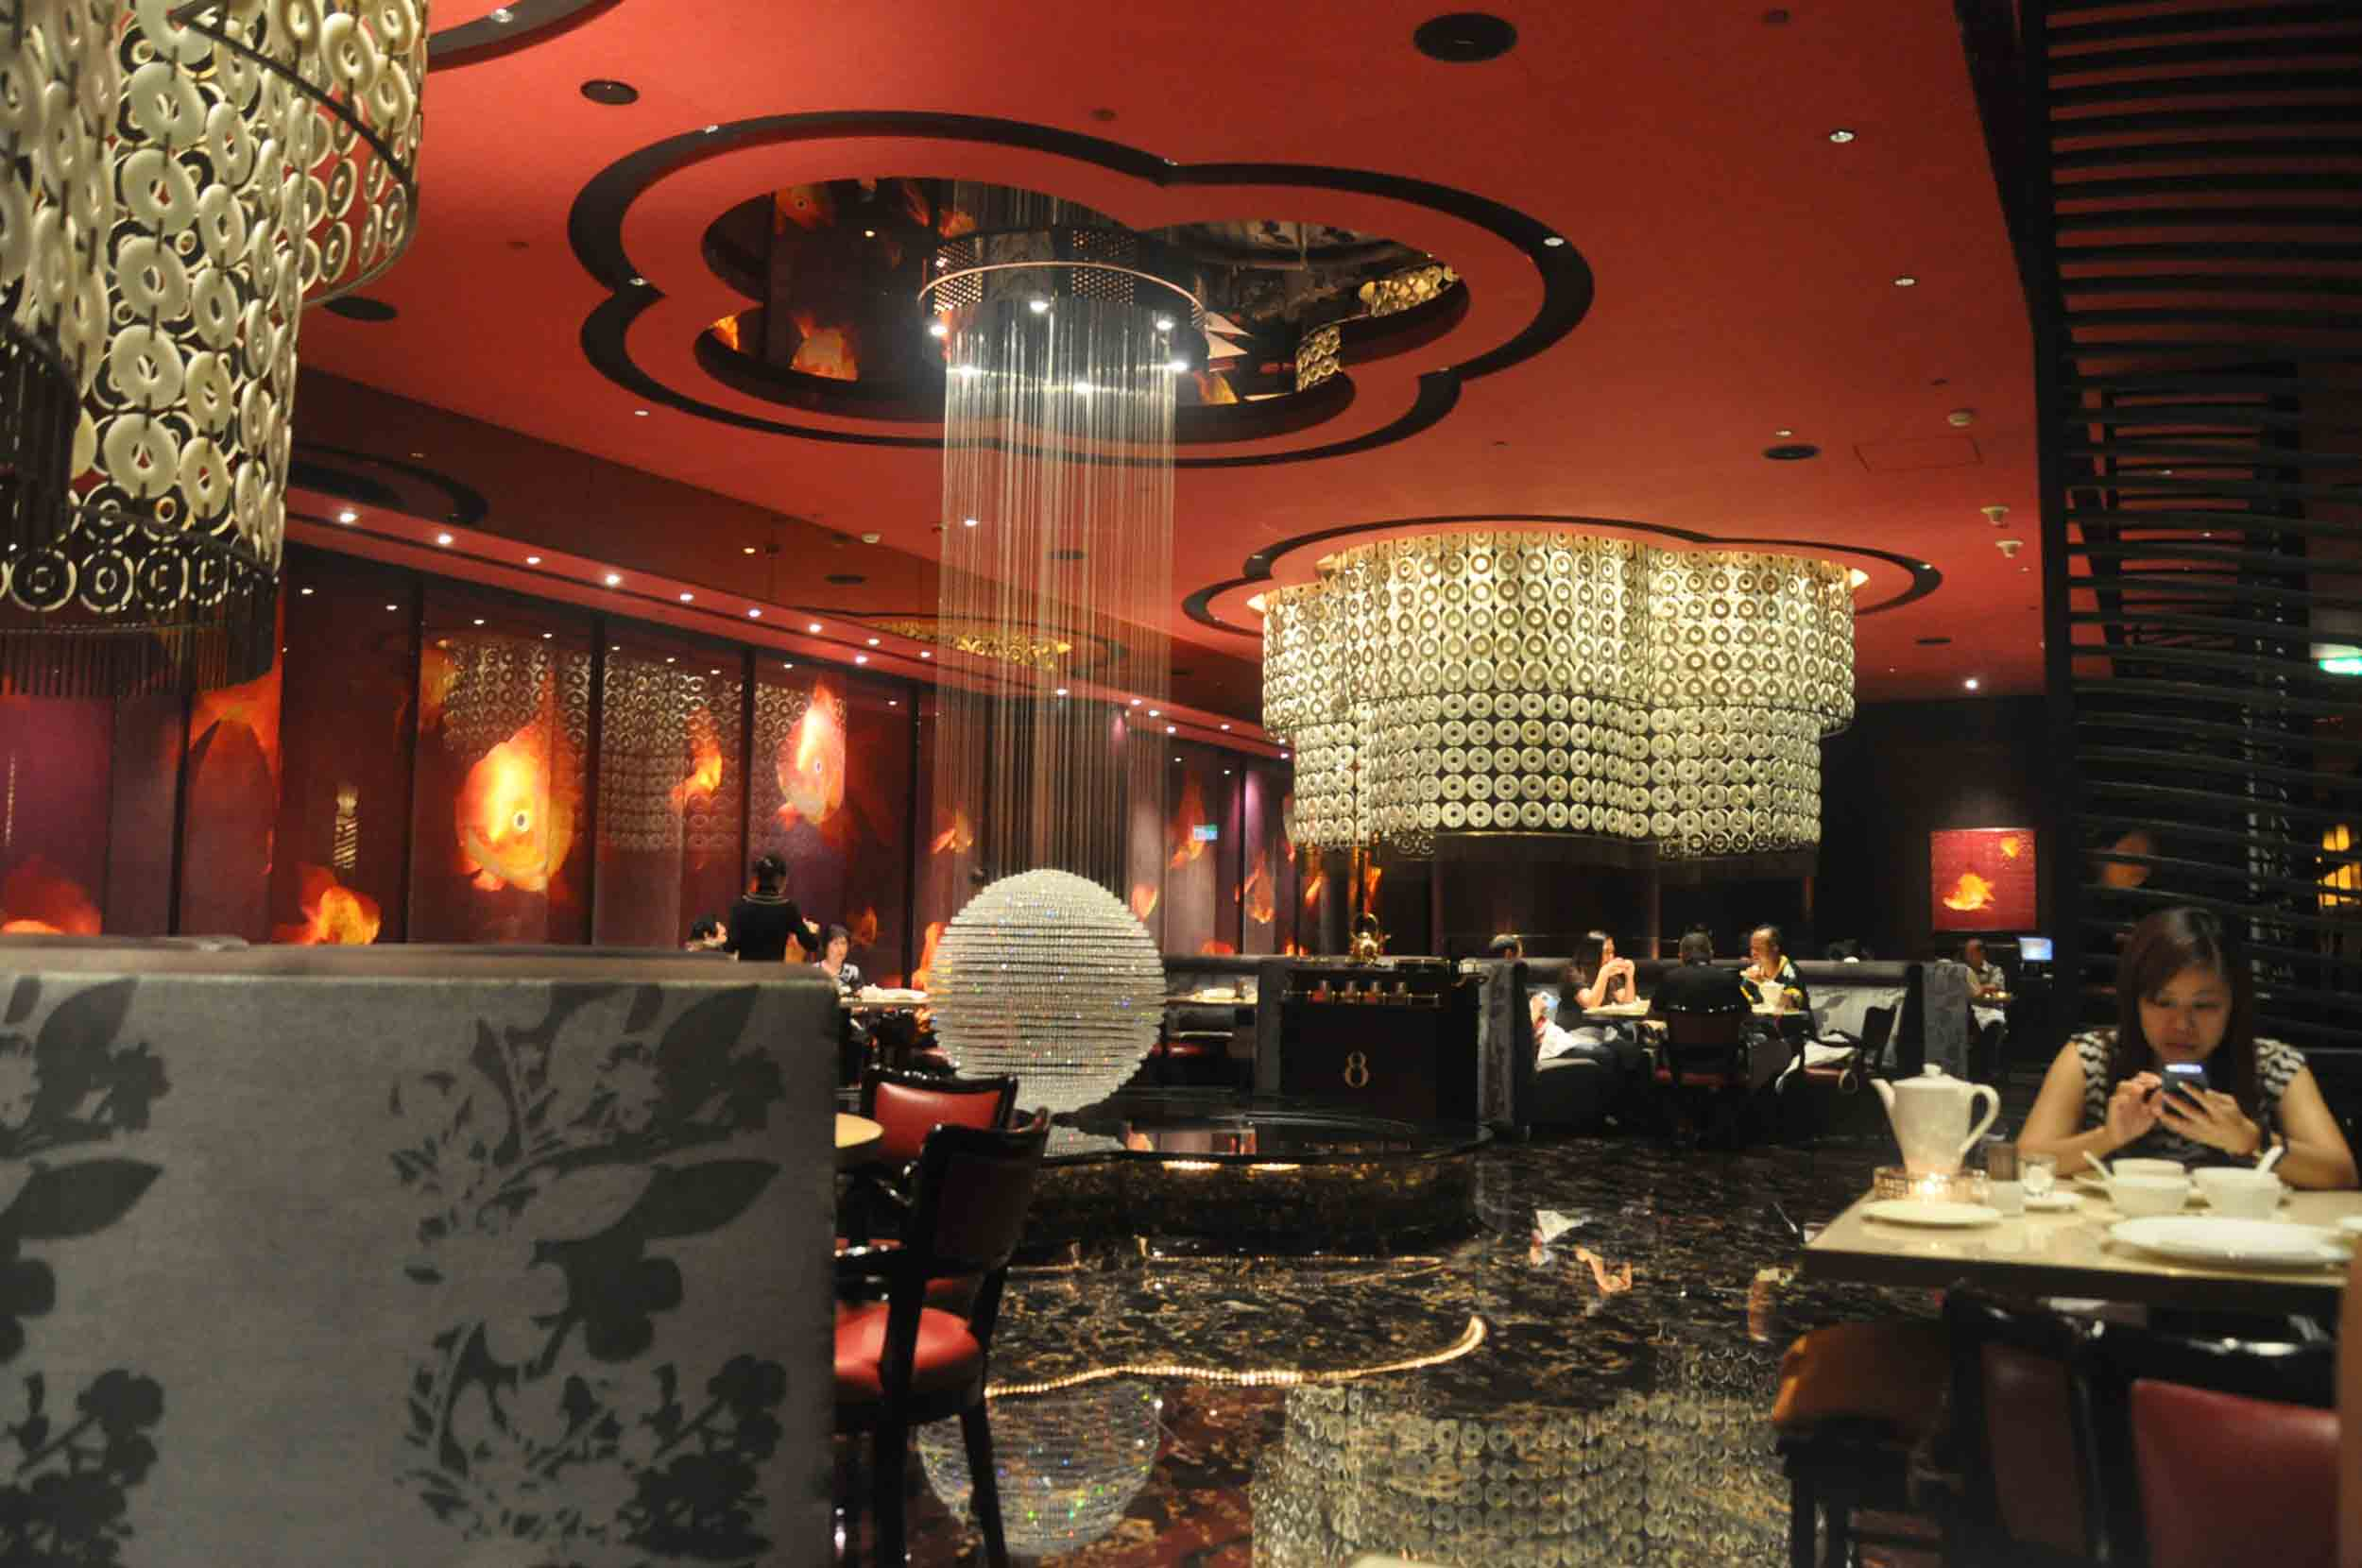 8 Restaurant Macau interior